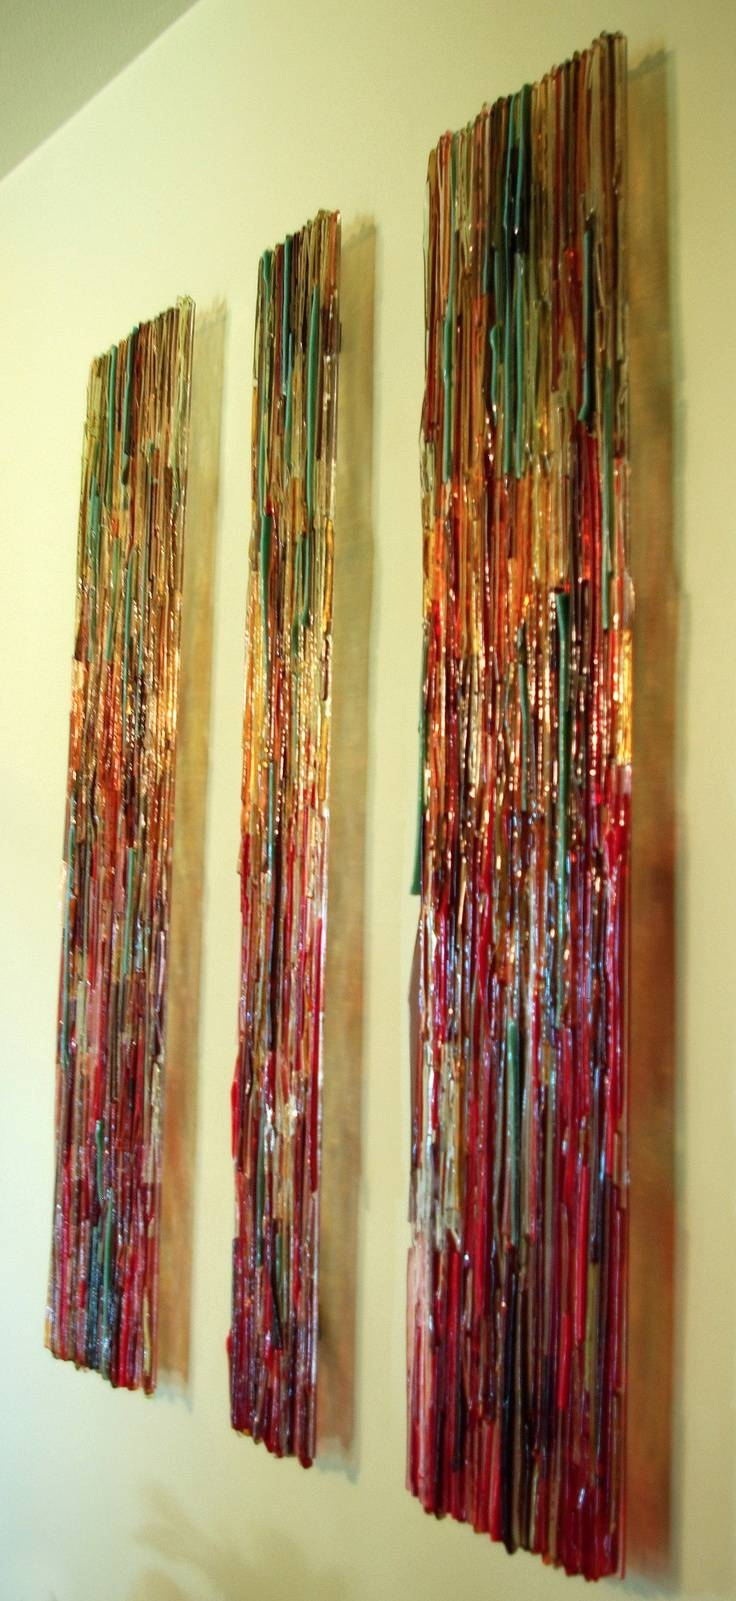 Glass Wall Art Design Inspiration Glass Wall Art – Home Decor Ideas For Current Fused Glass Wall Art (View 14 of 25)